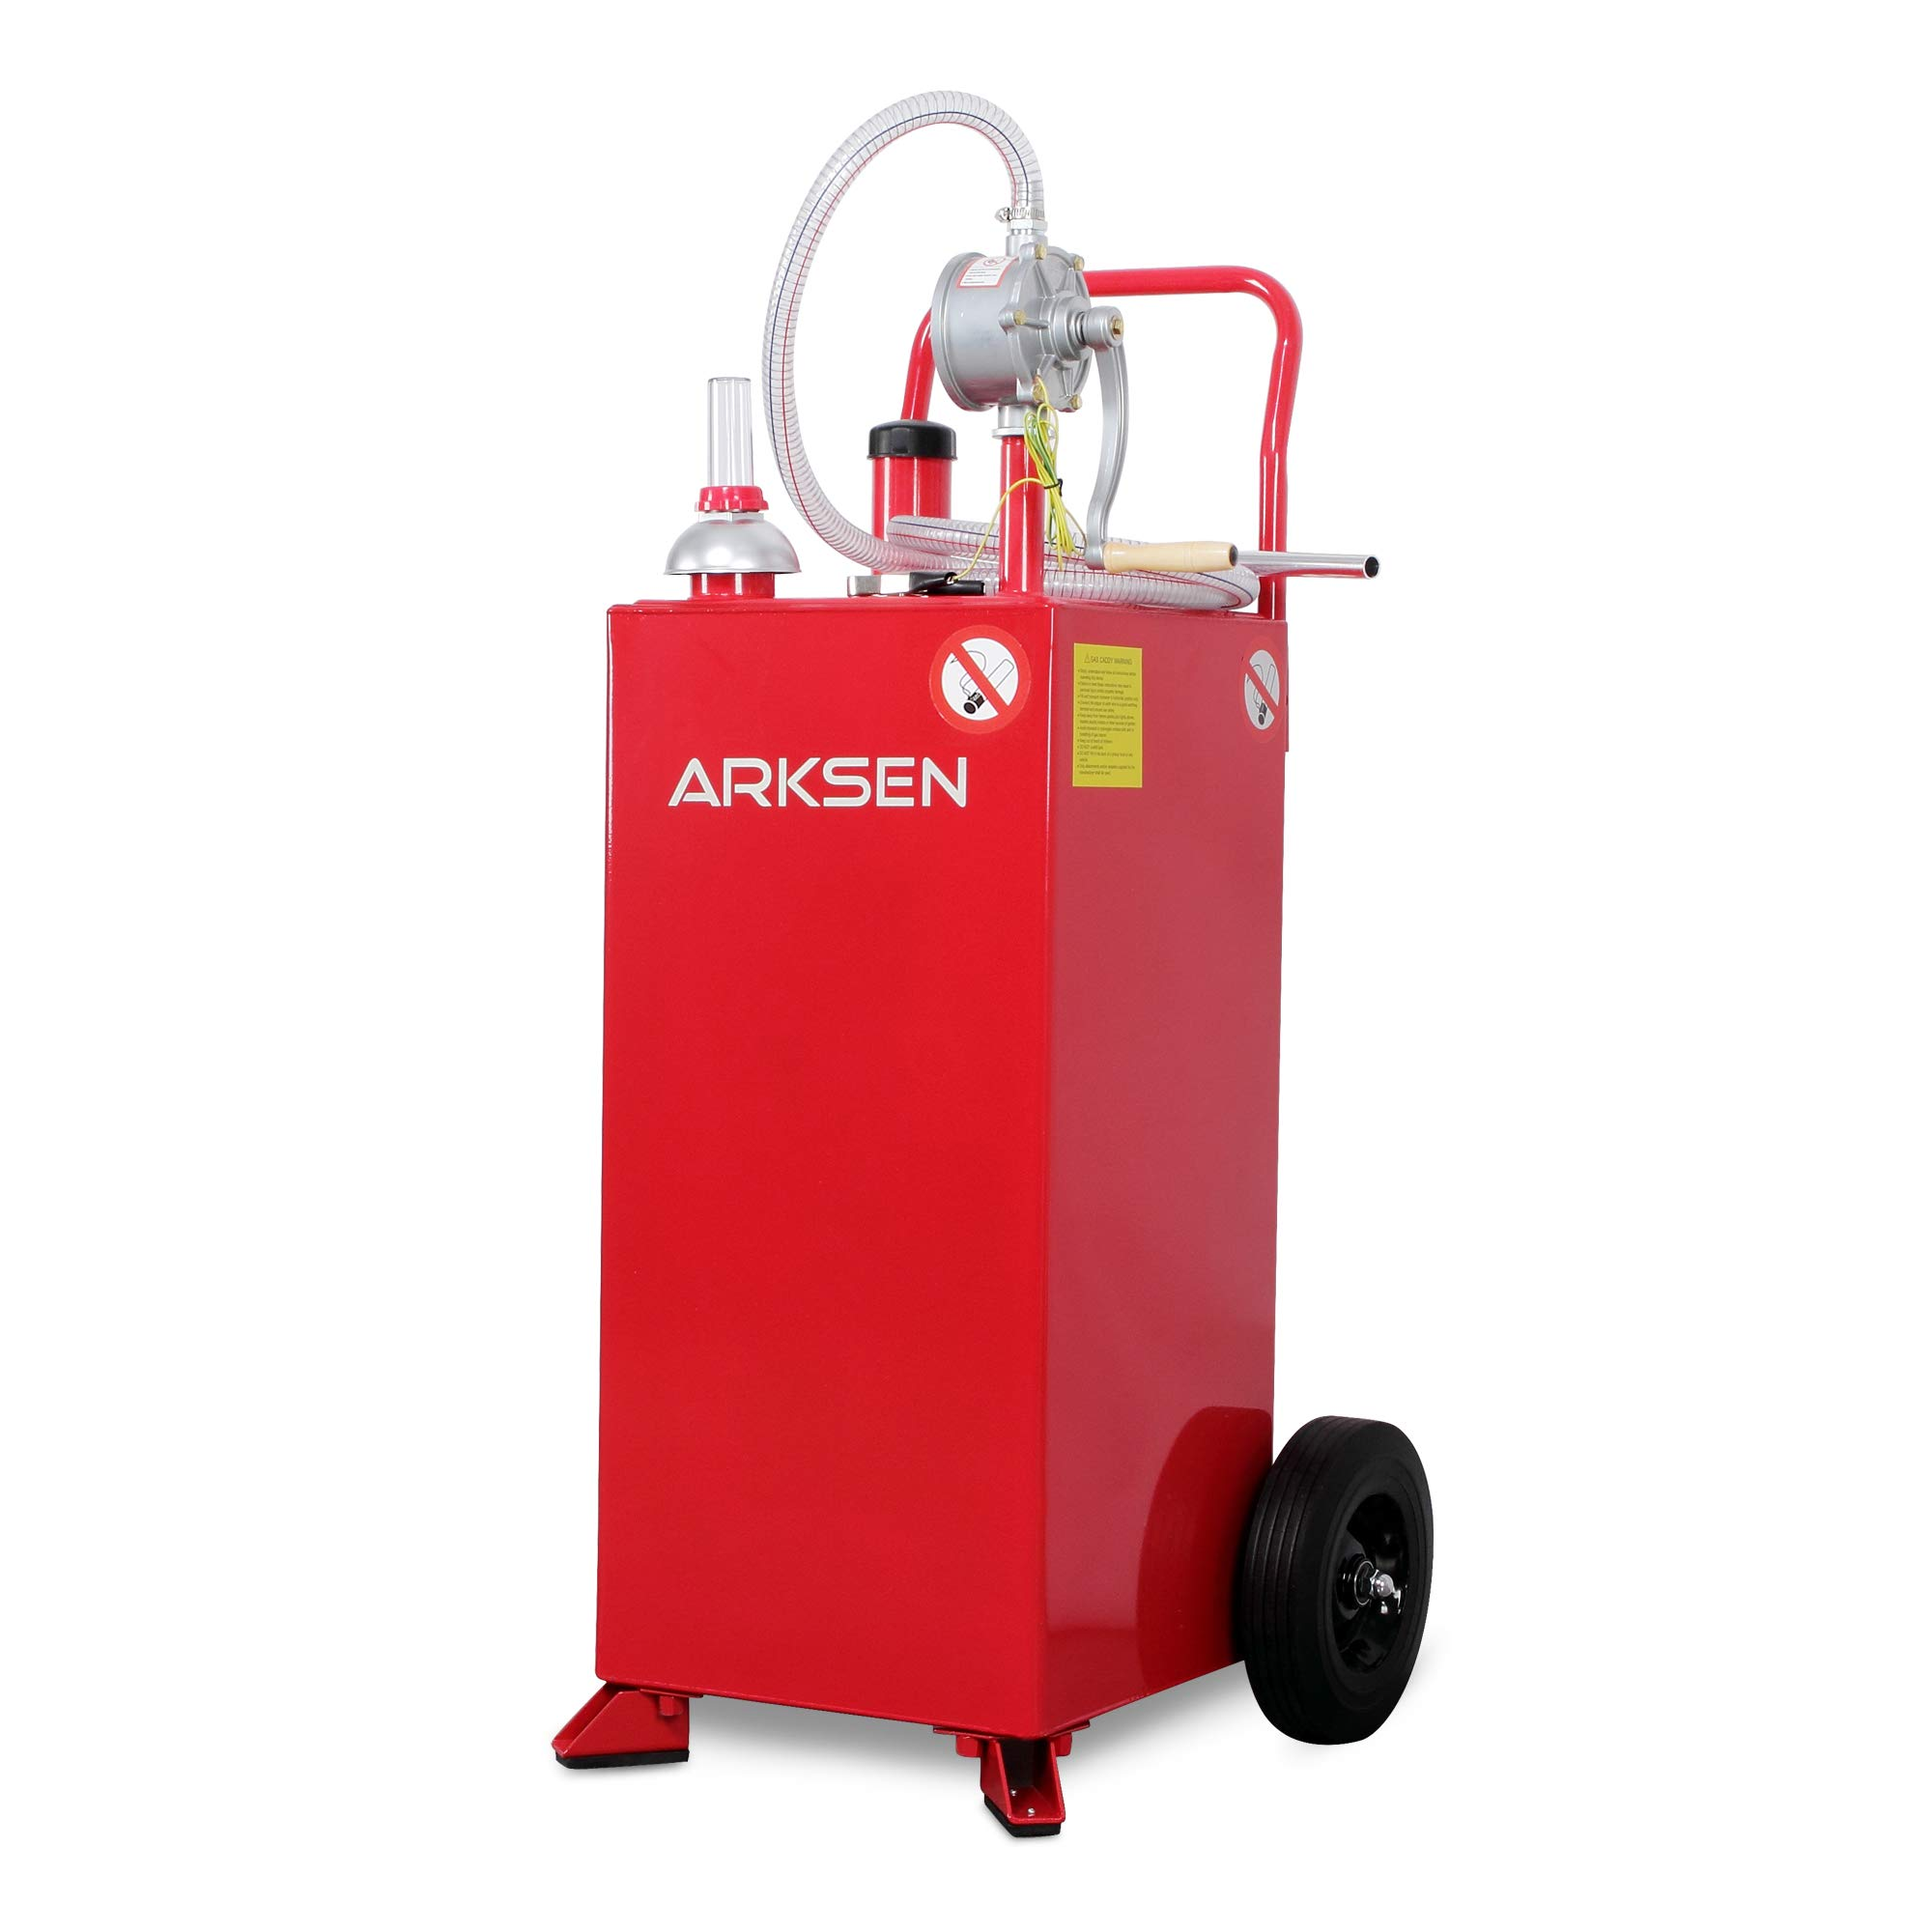 Arksen 30 Gallon Portable Gas Caddy Fuel Storage Tank Large Gasoline Diesel Can Hand Siphon Pump Rolling Pneumatic Wheels Boat ATV Car Motorcycle by ARKSEN